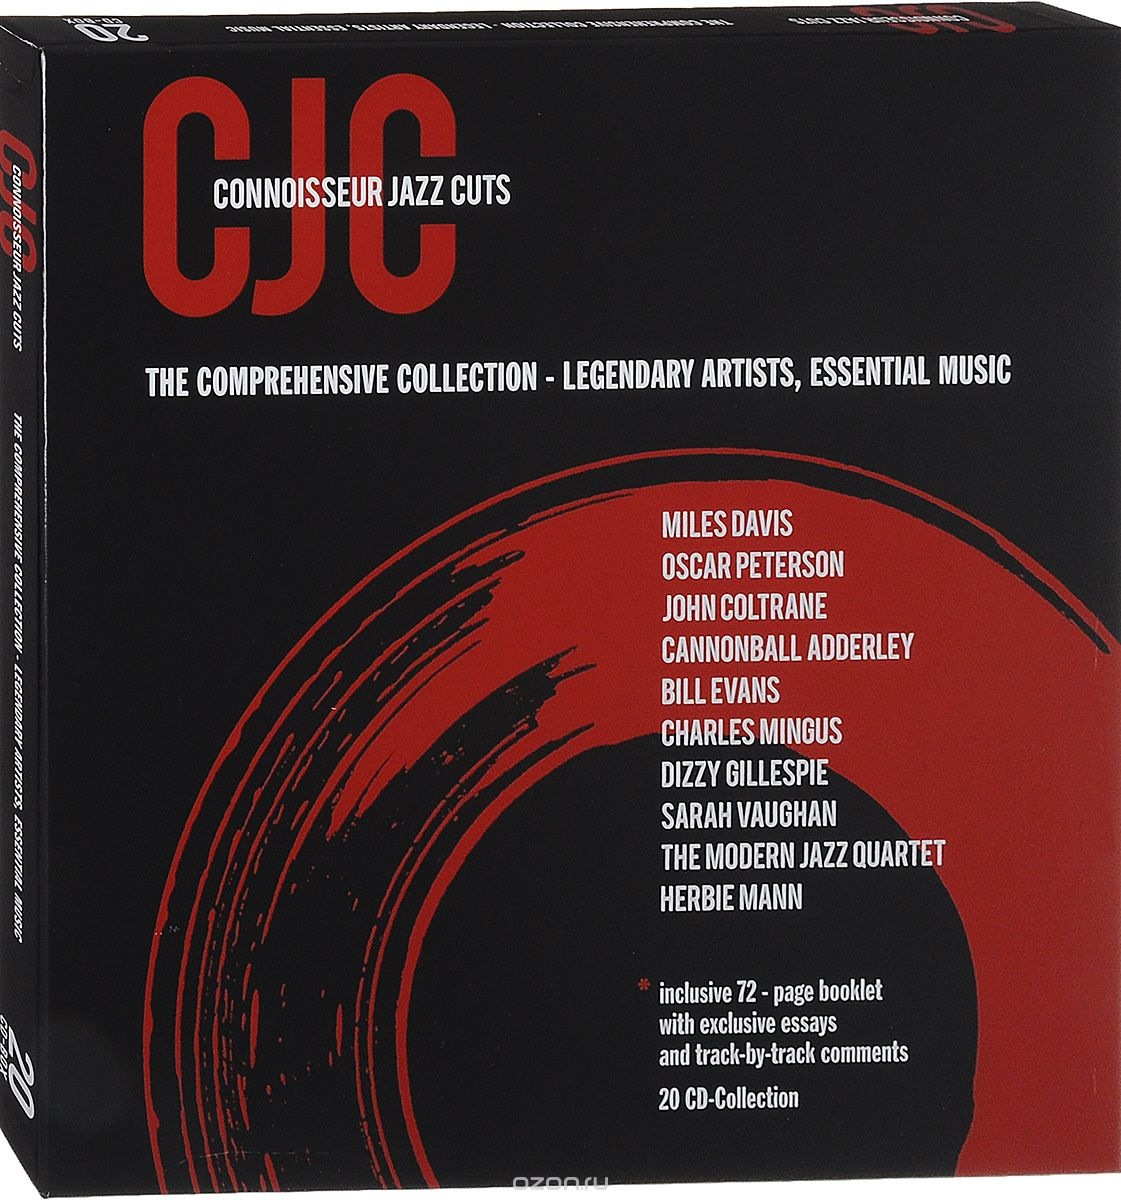 Connoisseur Jazz Cuts. The Comprehensive Collection - Legenadary Artists, Essential Music (20 CD)